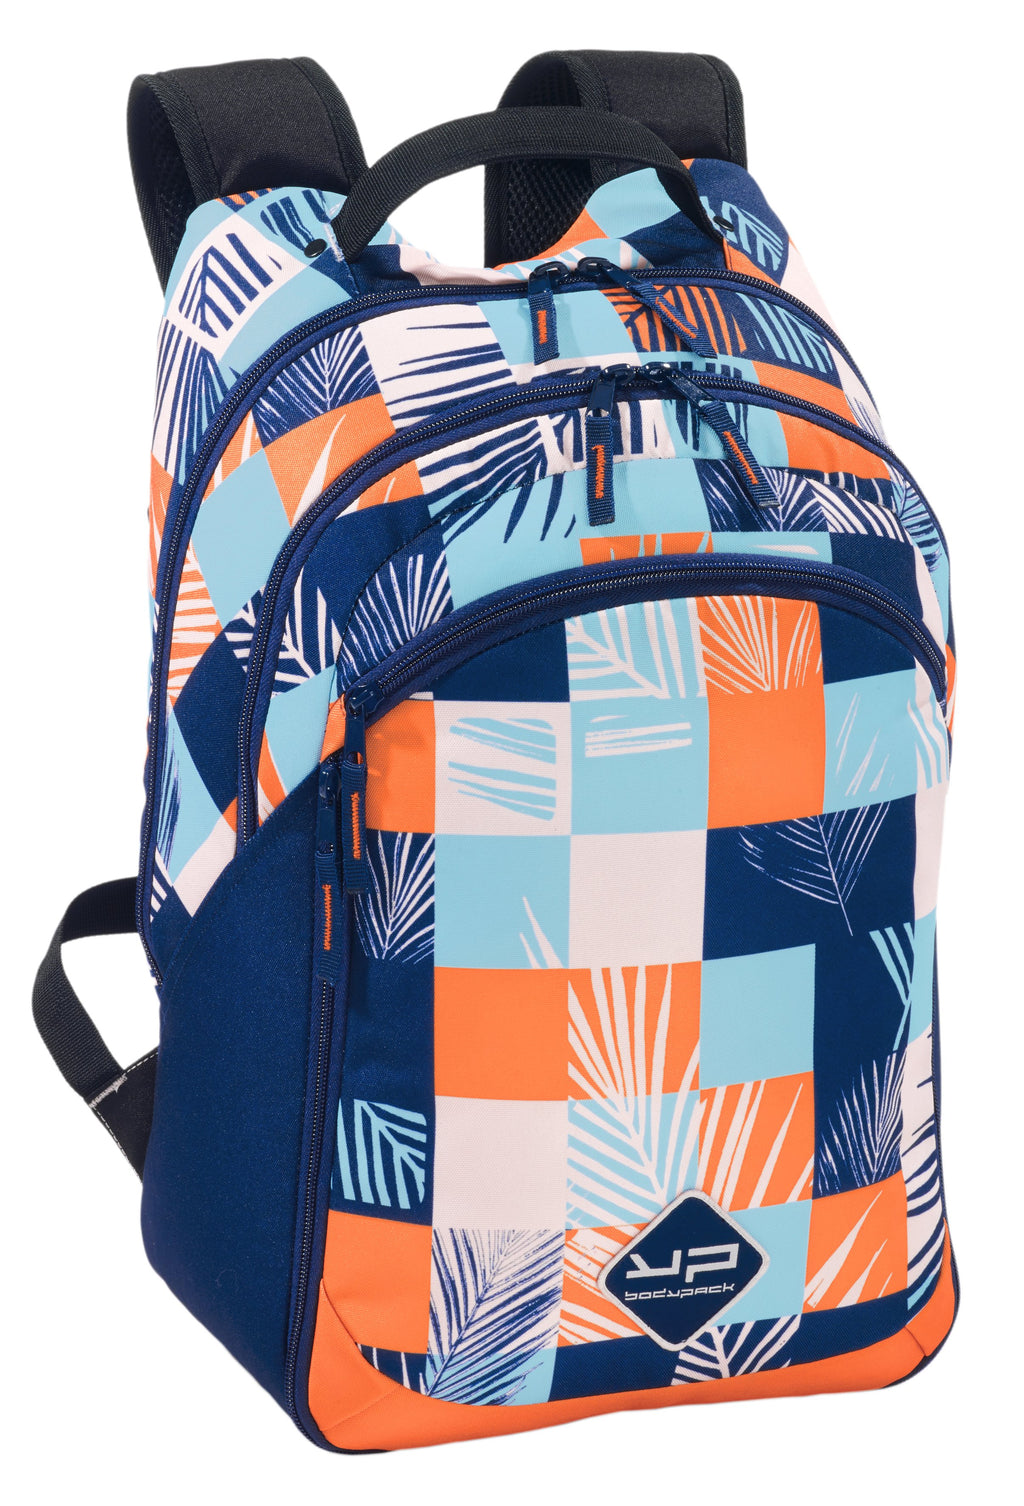 2 Compartments Palm Backpack - Bodypack